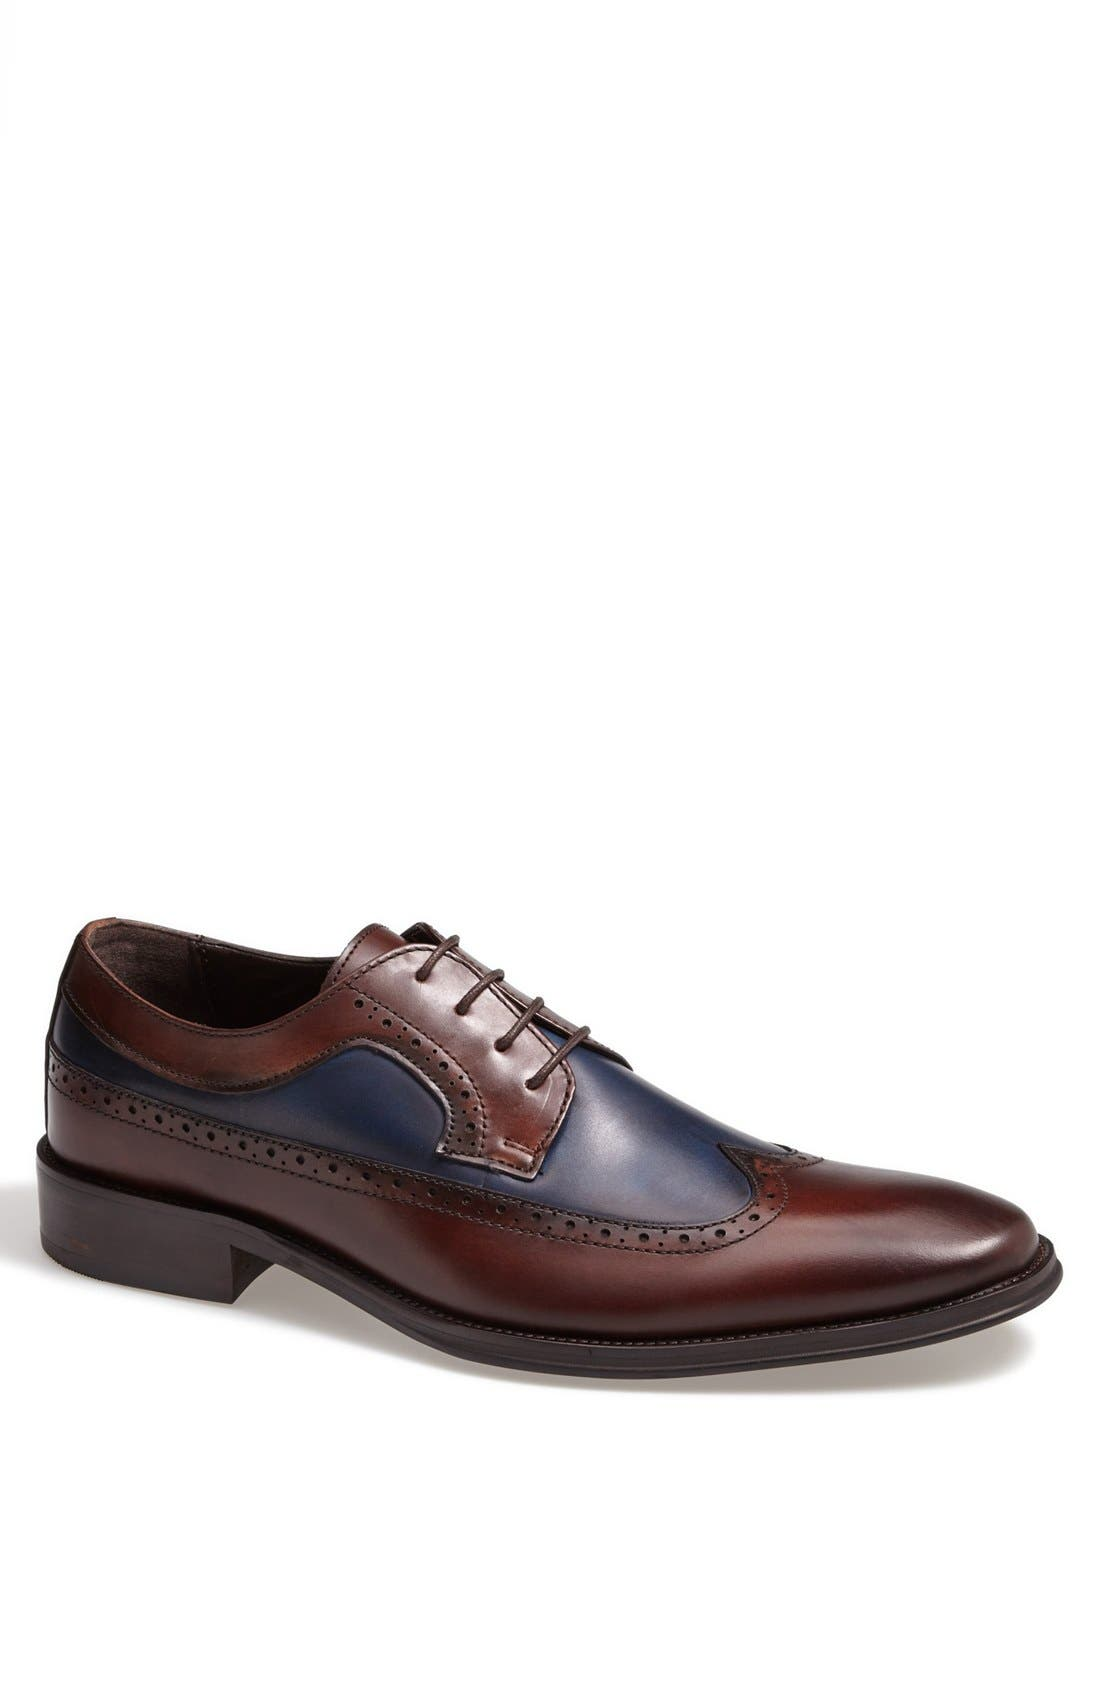 Main Image - ALDO 'Frankfort' Longwing Spectator Shoe (Men)